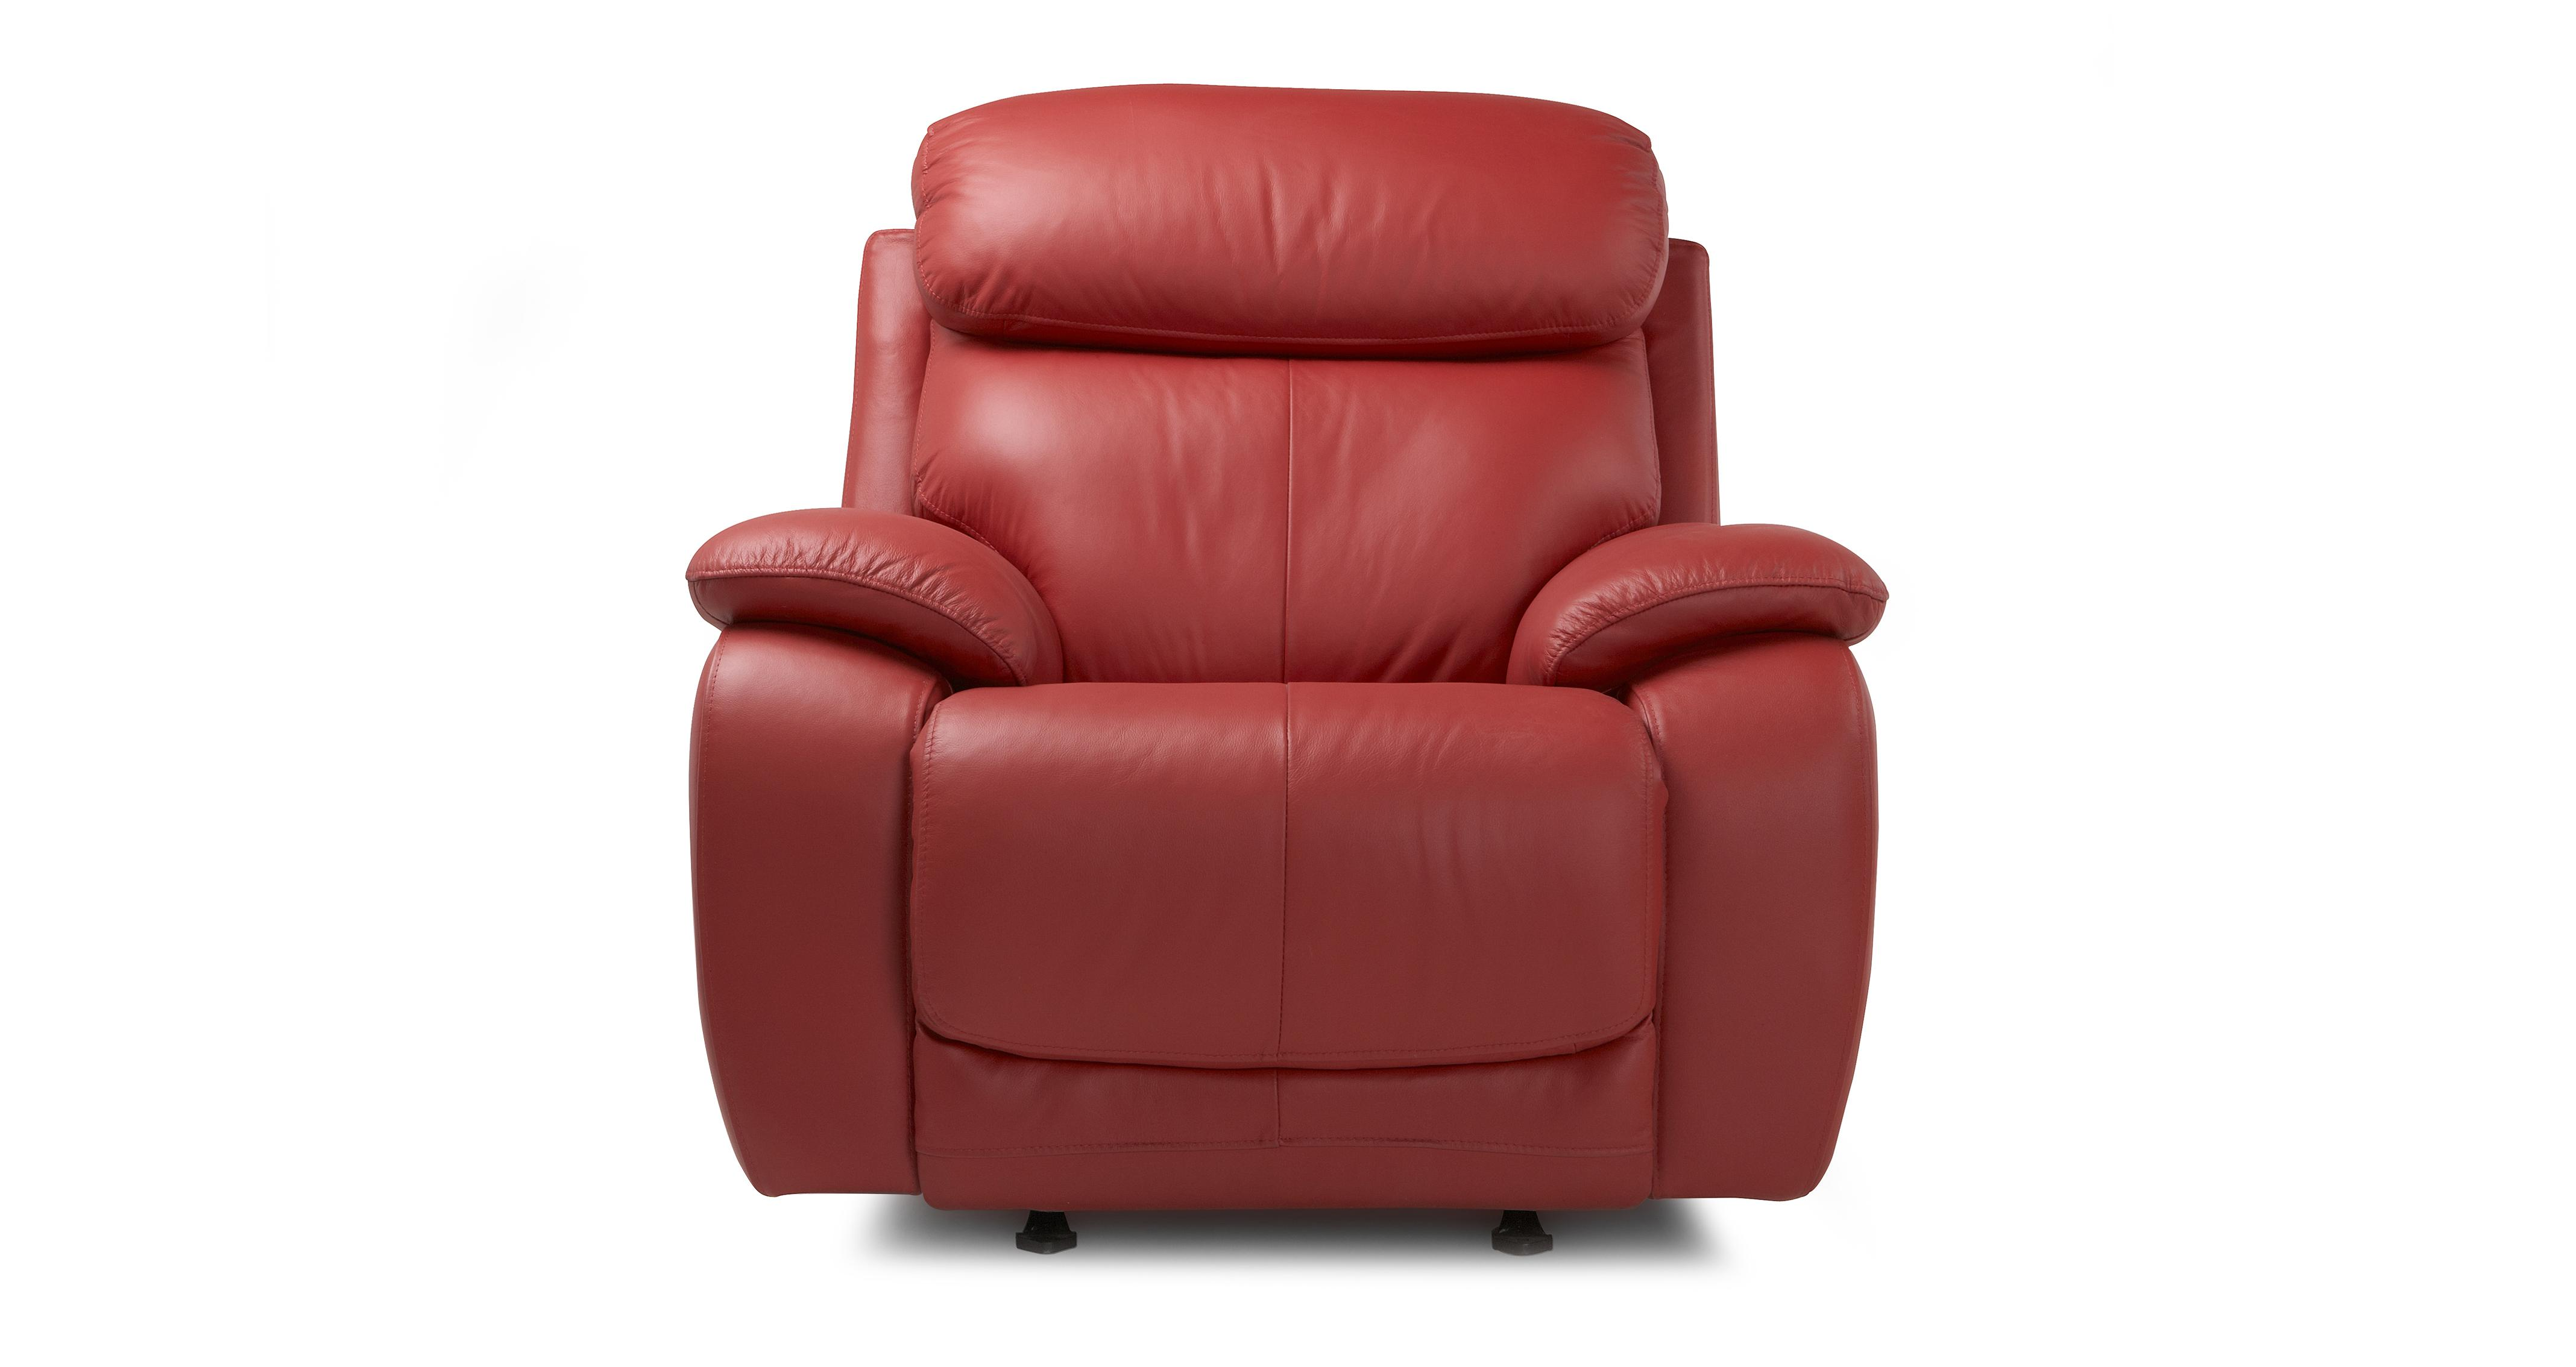 sofa swivel sofas chair recliner leather a rocking ottoman half size and of with rocker large deals